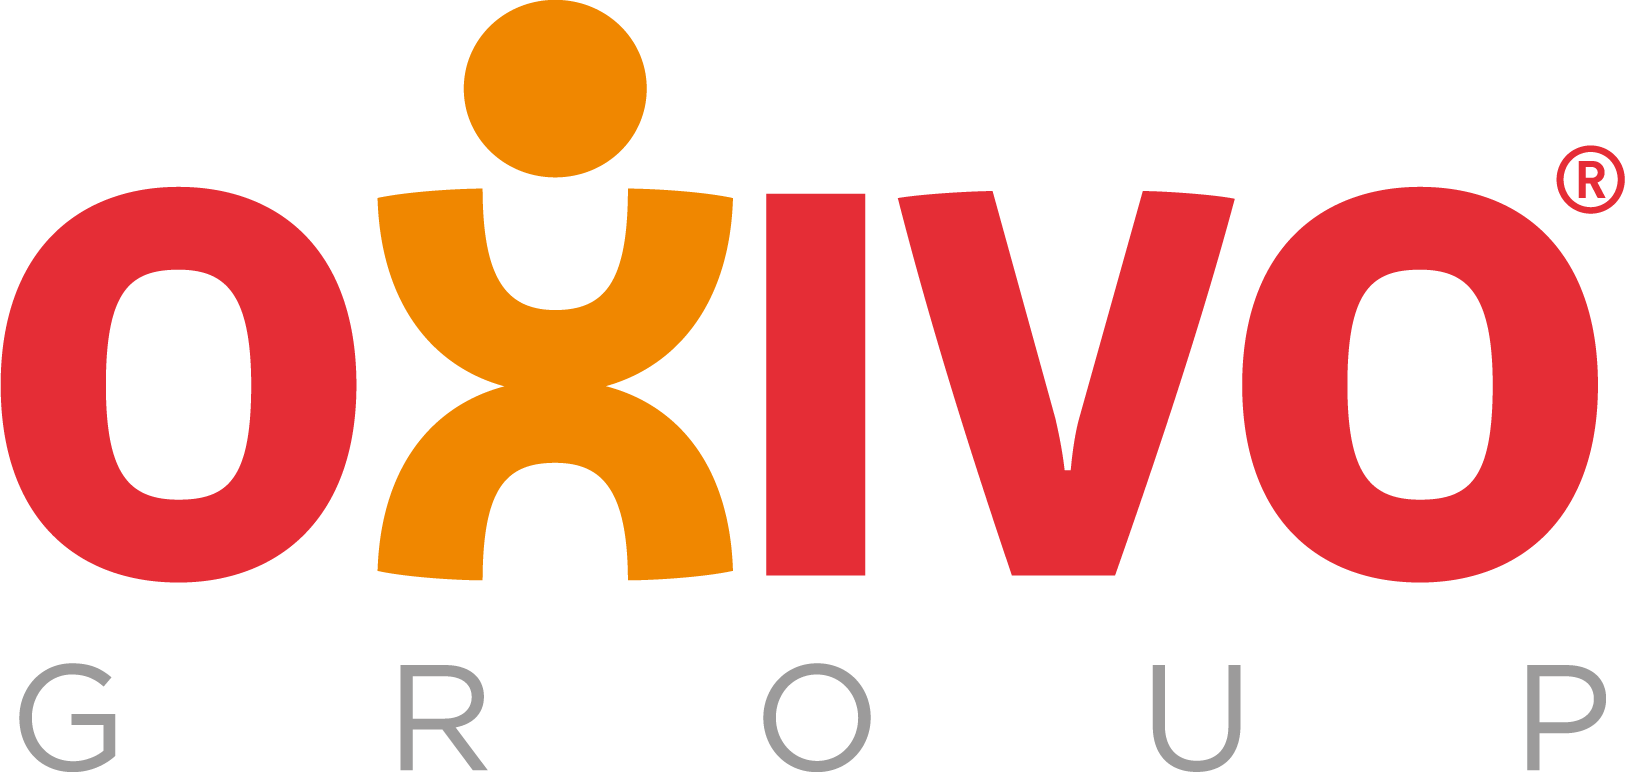 Oxivo Group Logo